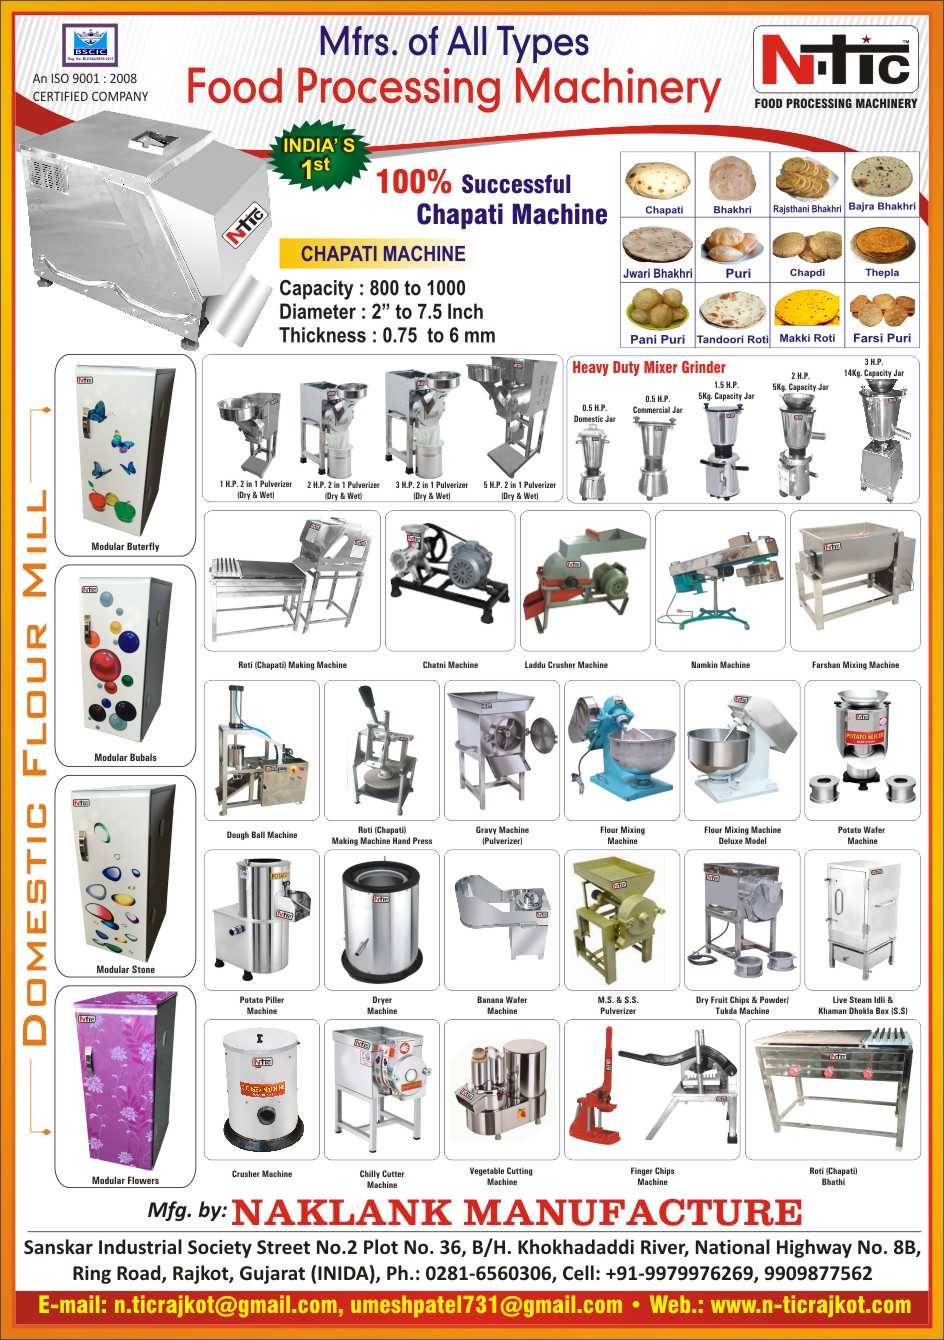 Food Processing Machines, Mixer Grinders, Chapati Machines, Roti Machines, Domestic Flour Mills, Two In One Pulverizer For Food, Gravy Machines, Flour Mixing Machines, Farshan Machines, Vegetable Cutting Machines, Masala Mixing Machines, Spice Mixing Machines, Potato Peeling Machines, Onion Cutting Machines, Potato Wafer Machines, Steam Idli Machines, Dryer Machines for Food, Chatni Machines, Laddu Crusher Machines, Namkeen Machines, Dough Ball Machines, Hand Press Roti Making Machines, Hand Press Chapati Making Machines, Banana Wafer Machines, SS Pulverizers, Stainless Steel Pulverizers, MS Pulverizers, Dry Fruit Chips Machines, Dry Fruit Powder Machines, Dry Fruit Tukda Machines, Stainless Steel Khaman Dhokla Boxes, Crusher Machine For Food, Chilly Cutter Machines, Chilli Cutter Machines, Finger Chips Machines, Roti Bhathi, Chapati Bhathi, Chapati Making Machines, Roti Making Machines